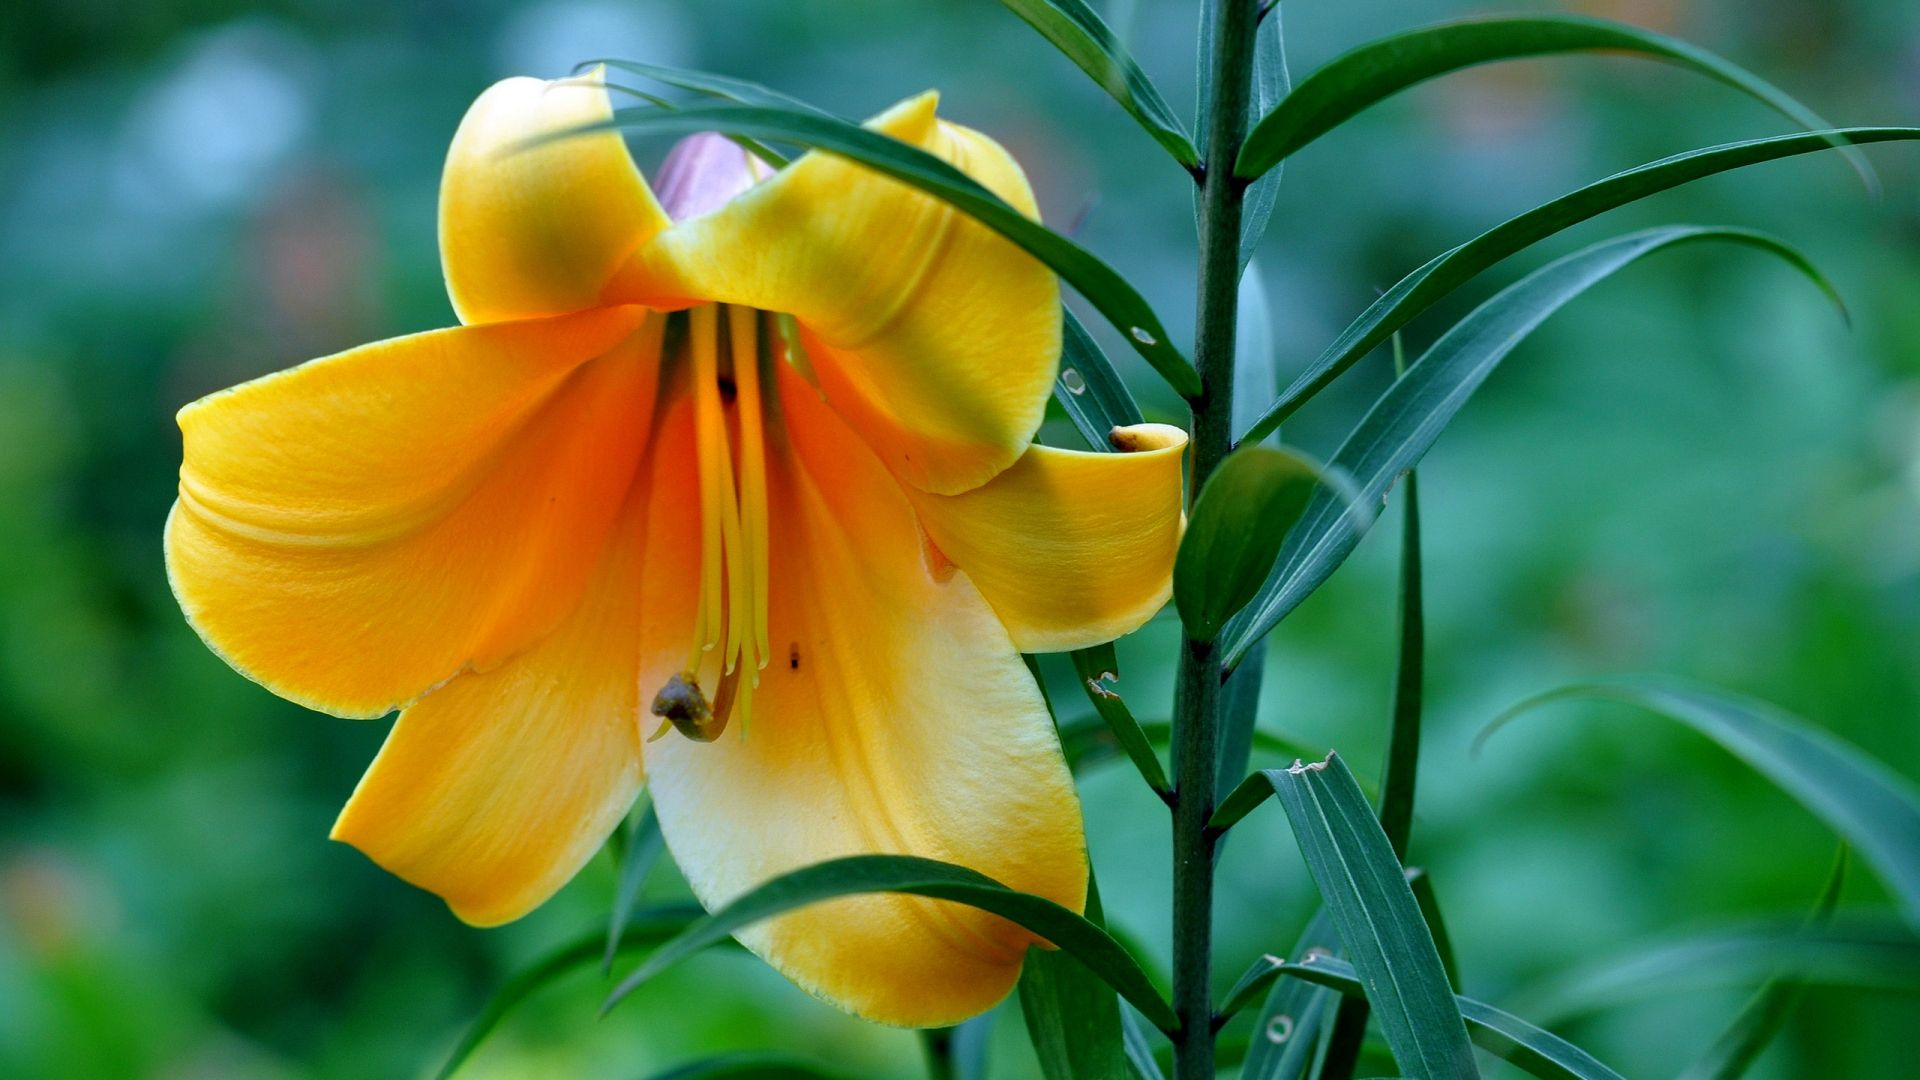 Beautiful yellow lily flower 1920x1080 wallpapers pinterest beautiful yellow lily flower 1920x1080 izmirmasajfo